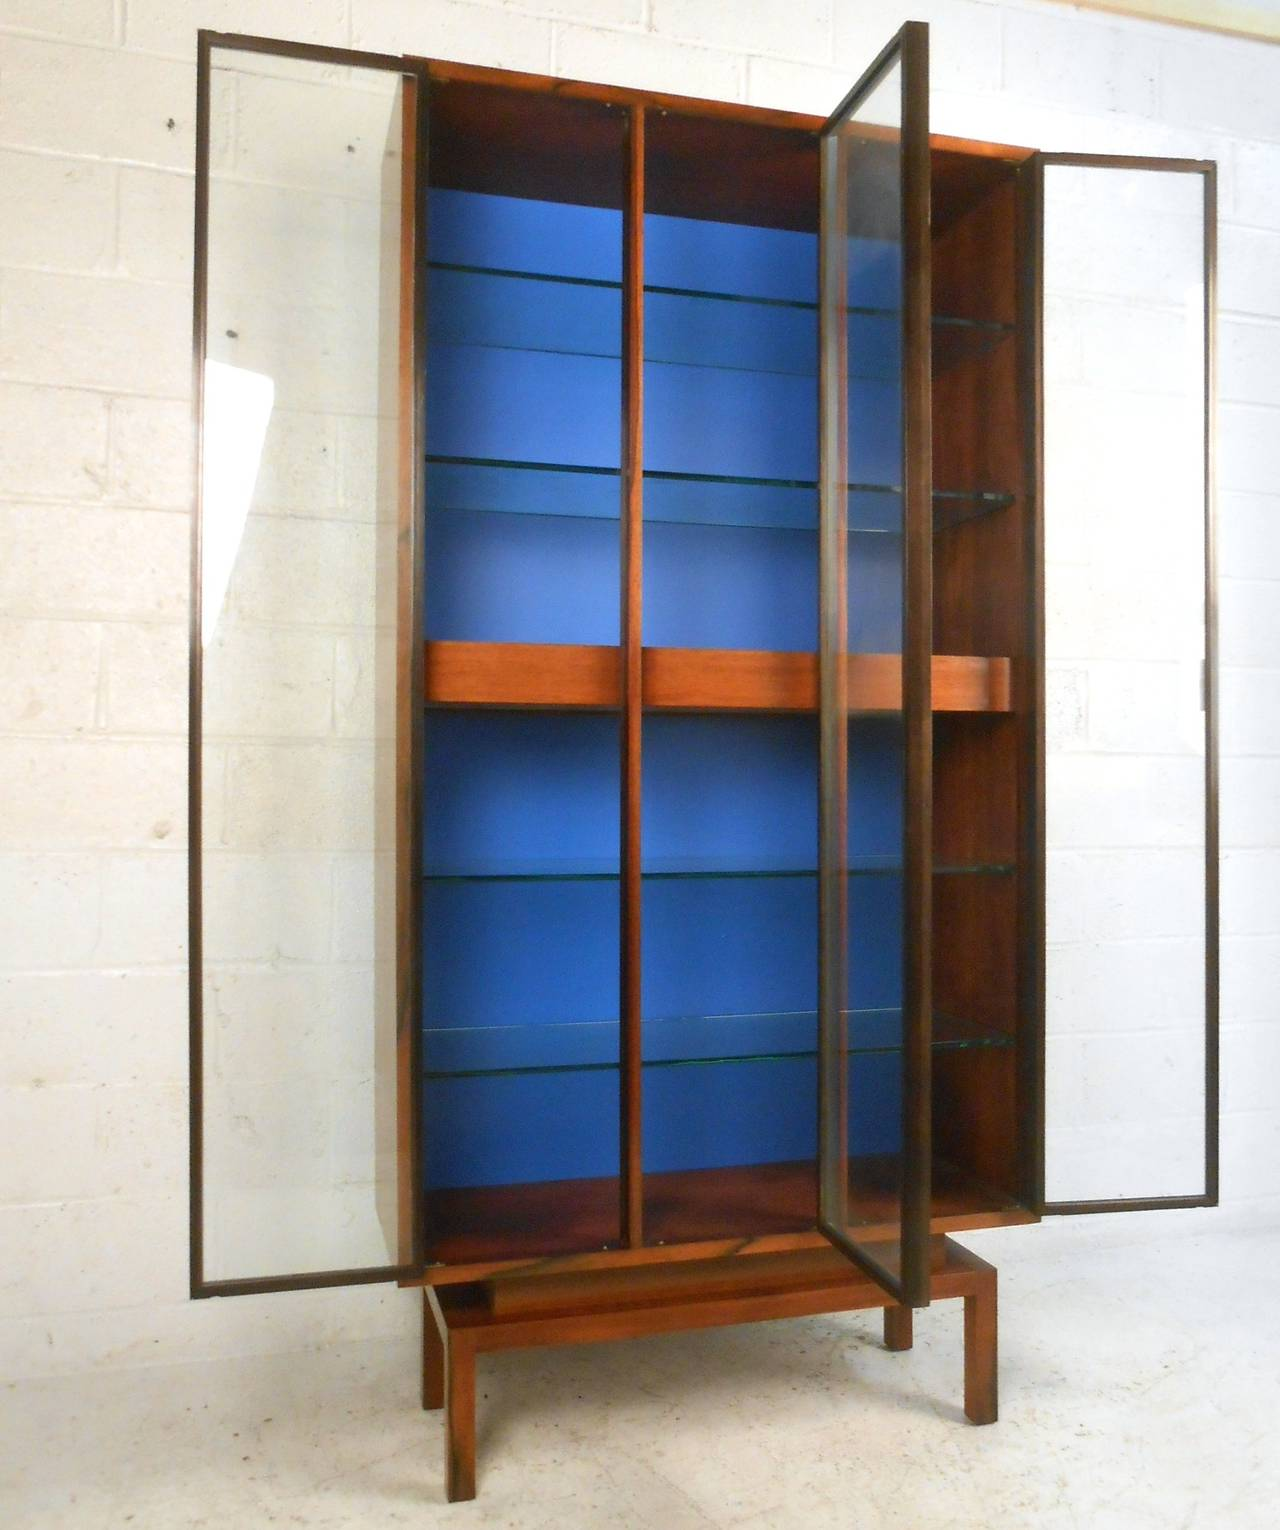 American Custom Mid-Century Modern Rosewood Display Cabinet by Samson Berman For Sale & Custom Mid-Century Modern Rosewood Display Cabinet by Samson Berman ...